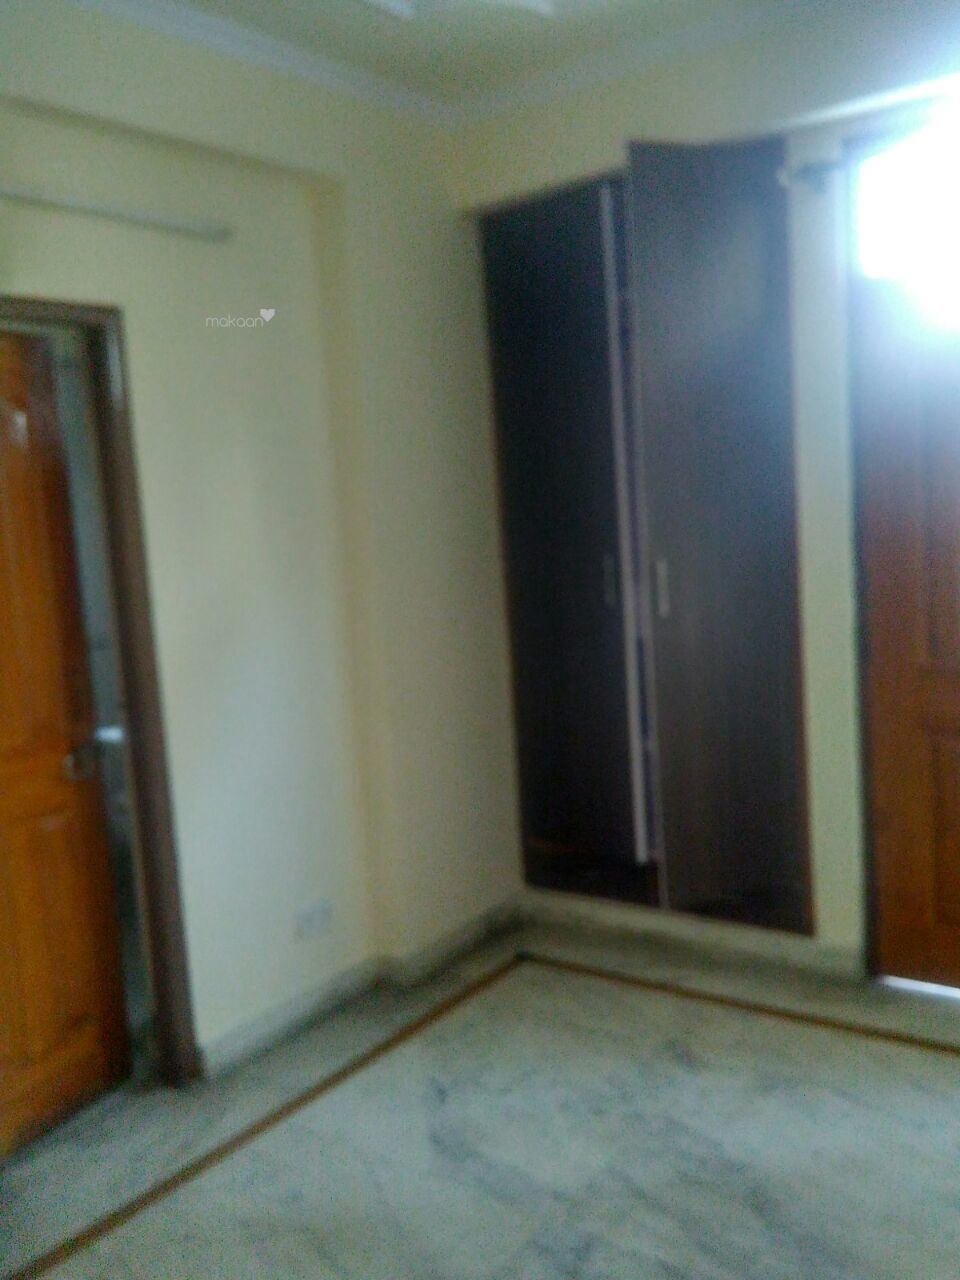 1700 sq ft 3BHK 3BHK+2T (1,700 sq ft) + Store Room Property By sinha real estate In Project, Sector 7 Dwarka